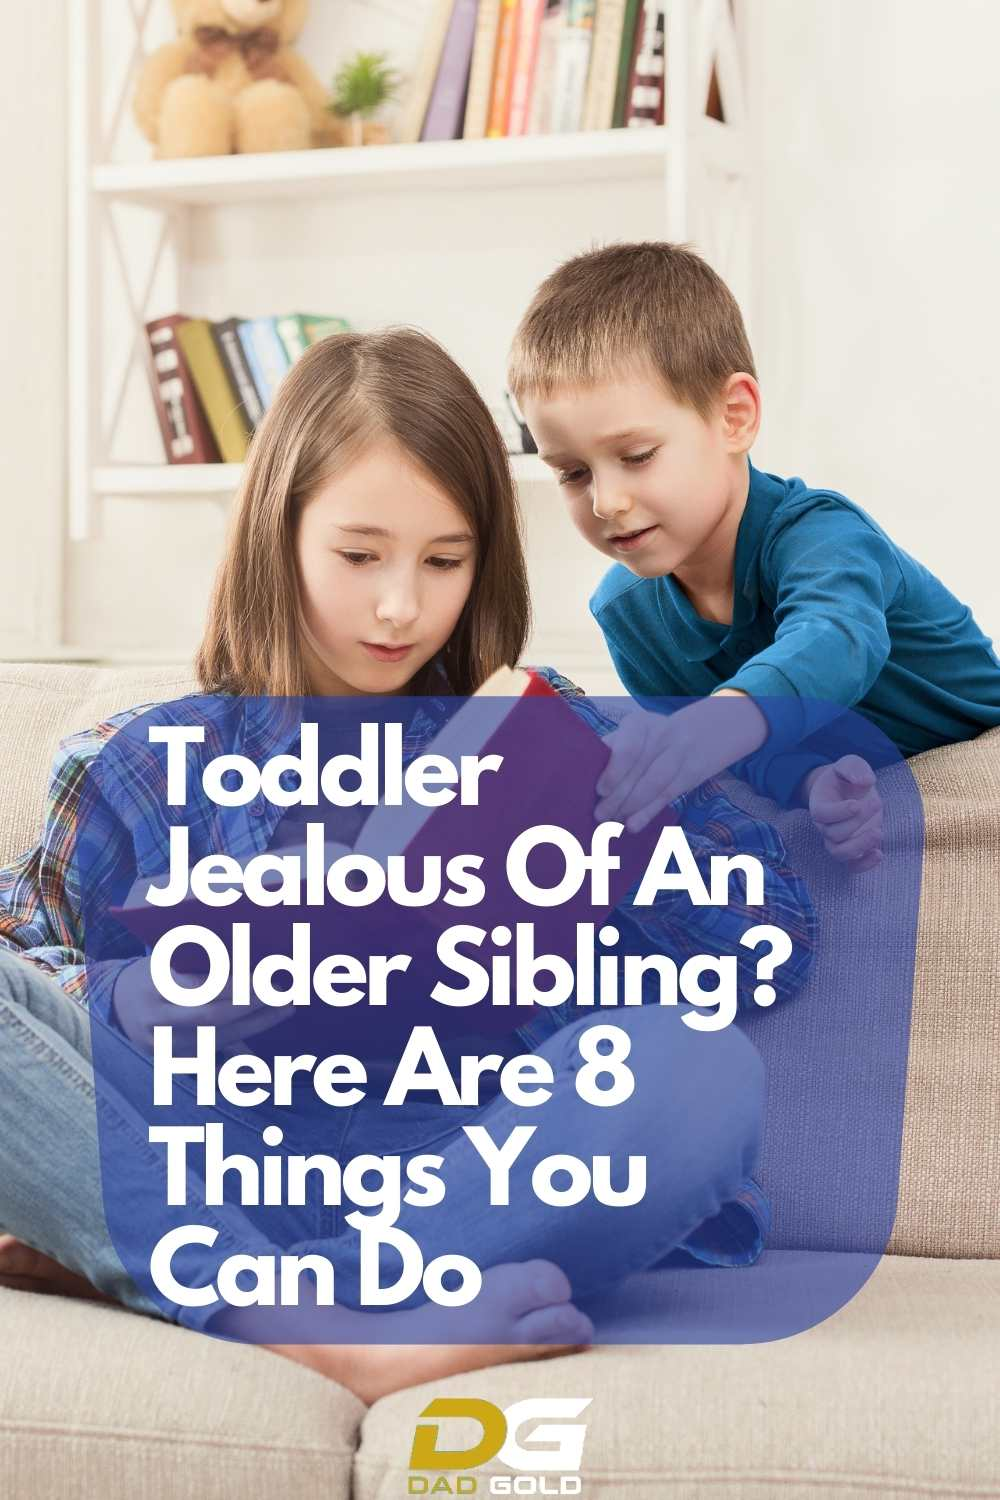 Toddler Jealous Of An Older Sibling_ Here Are 8 Things You Can Do